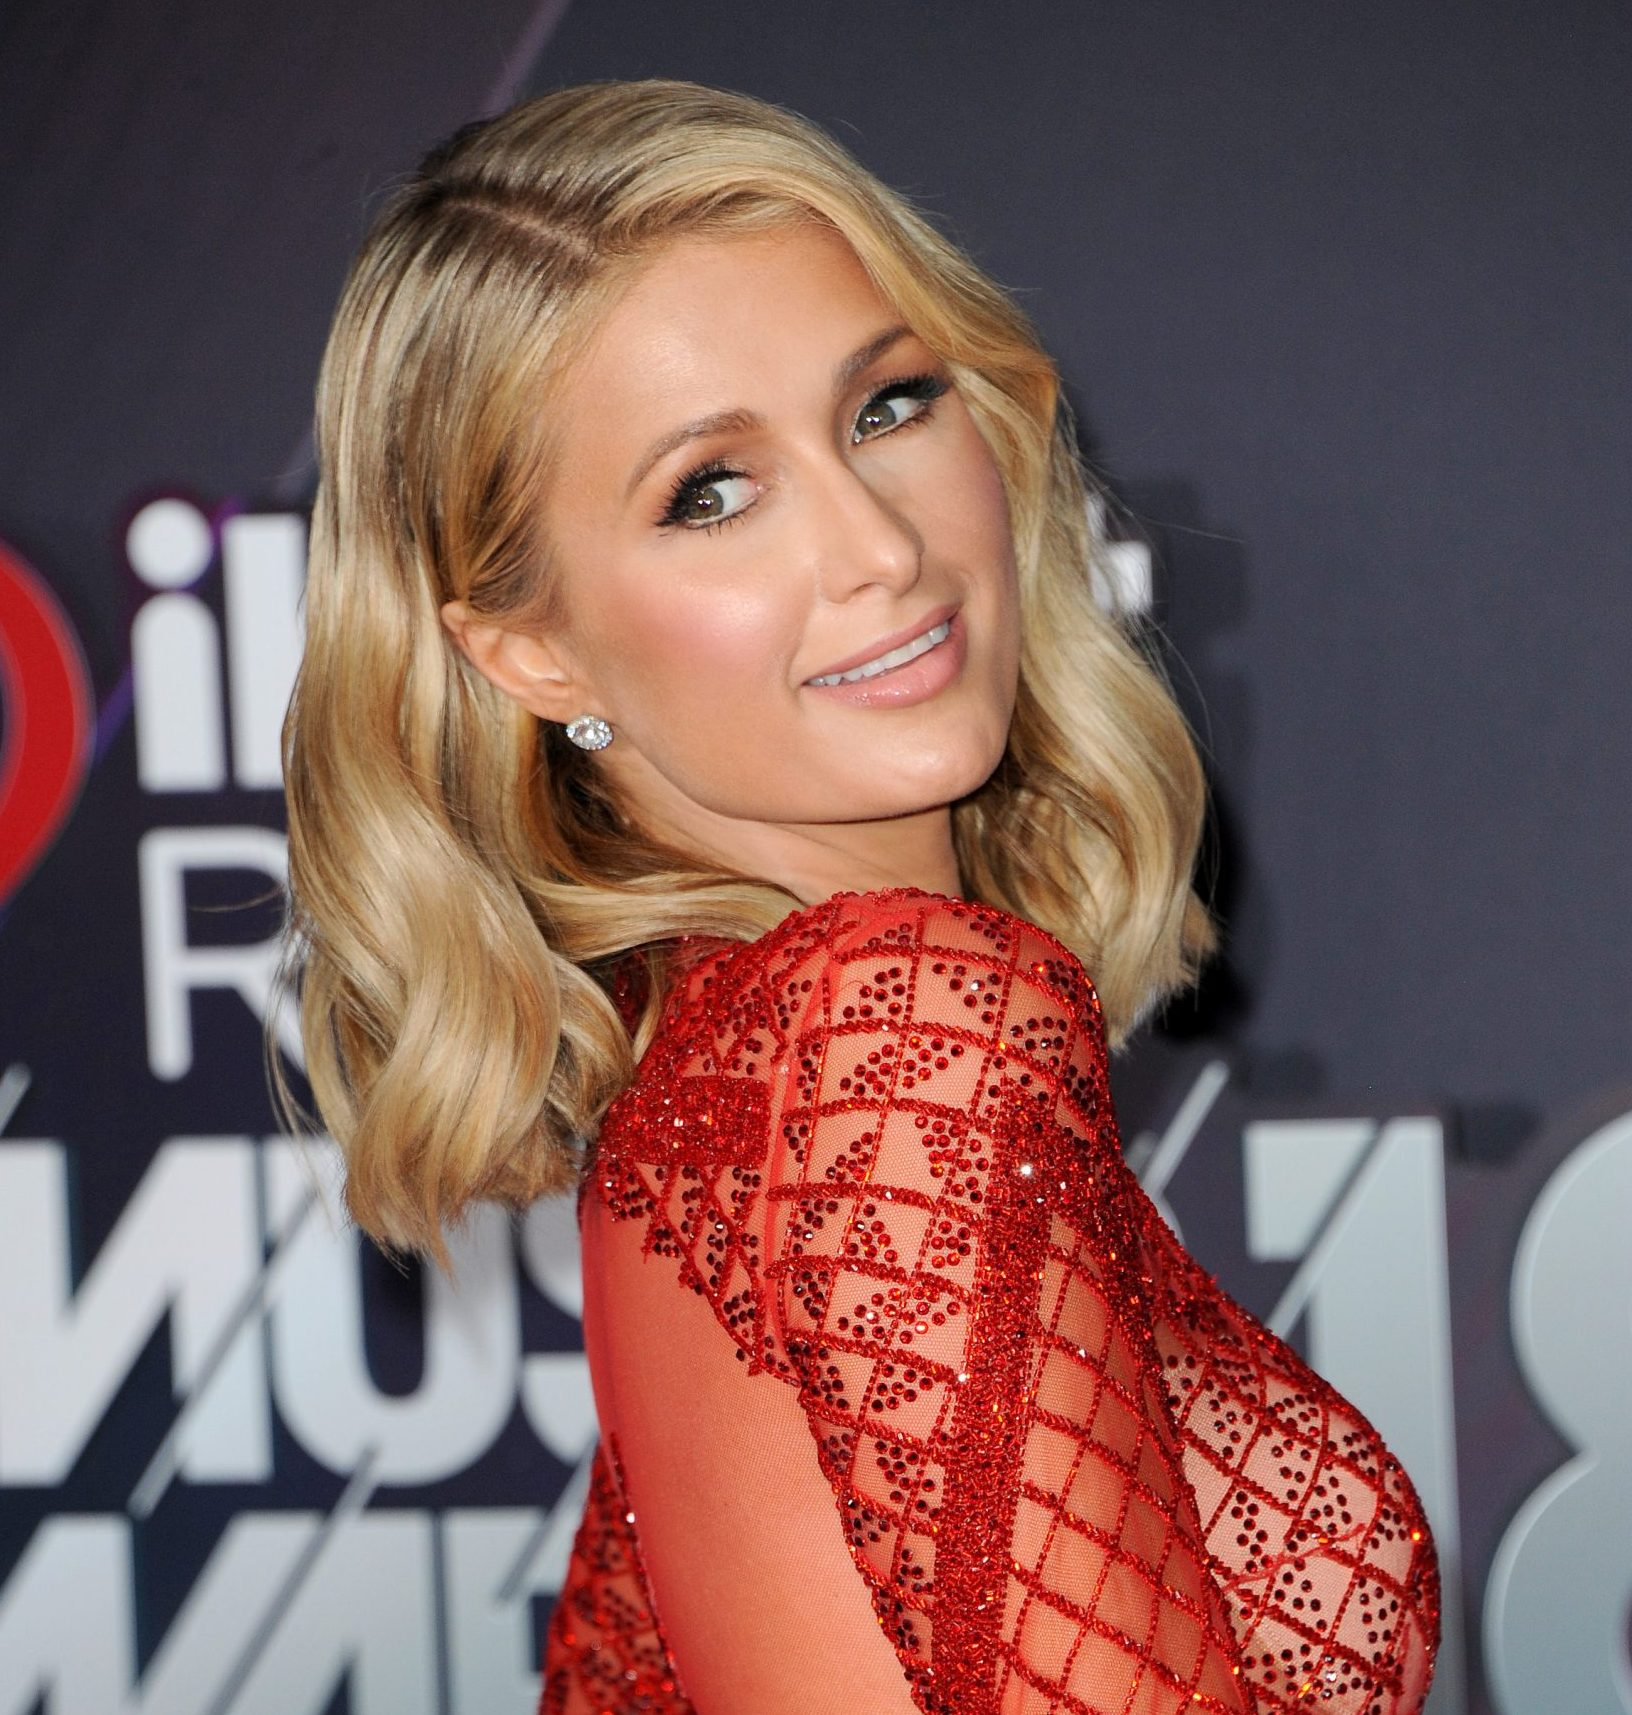 Paris Hilton wears a striking red dress at a red carpet event. She is looking over her shoulder at the camera and her hair is just below her shoulders.